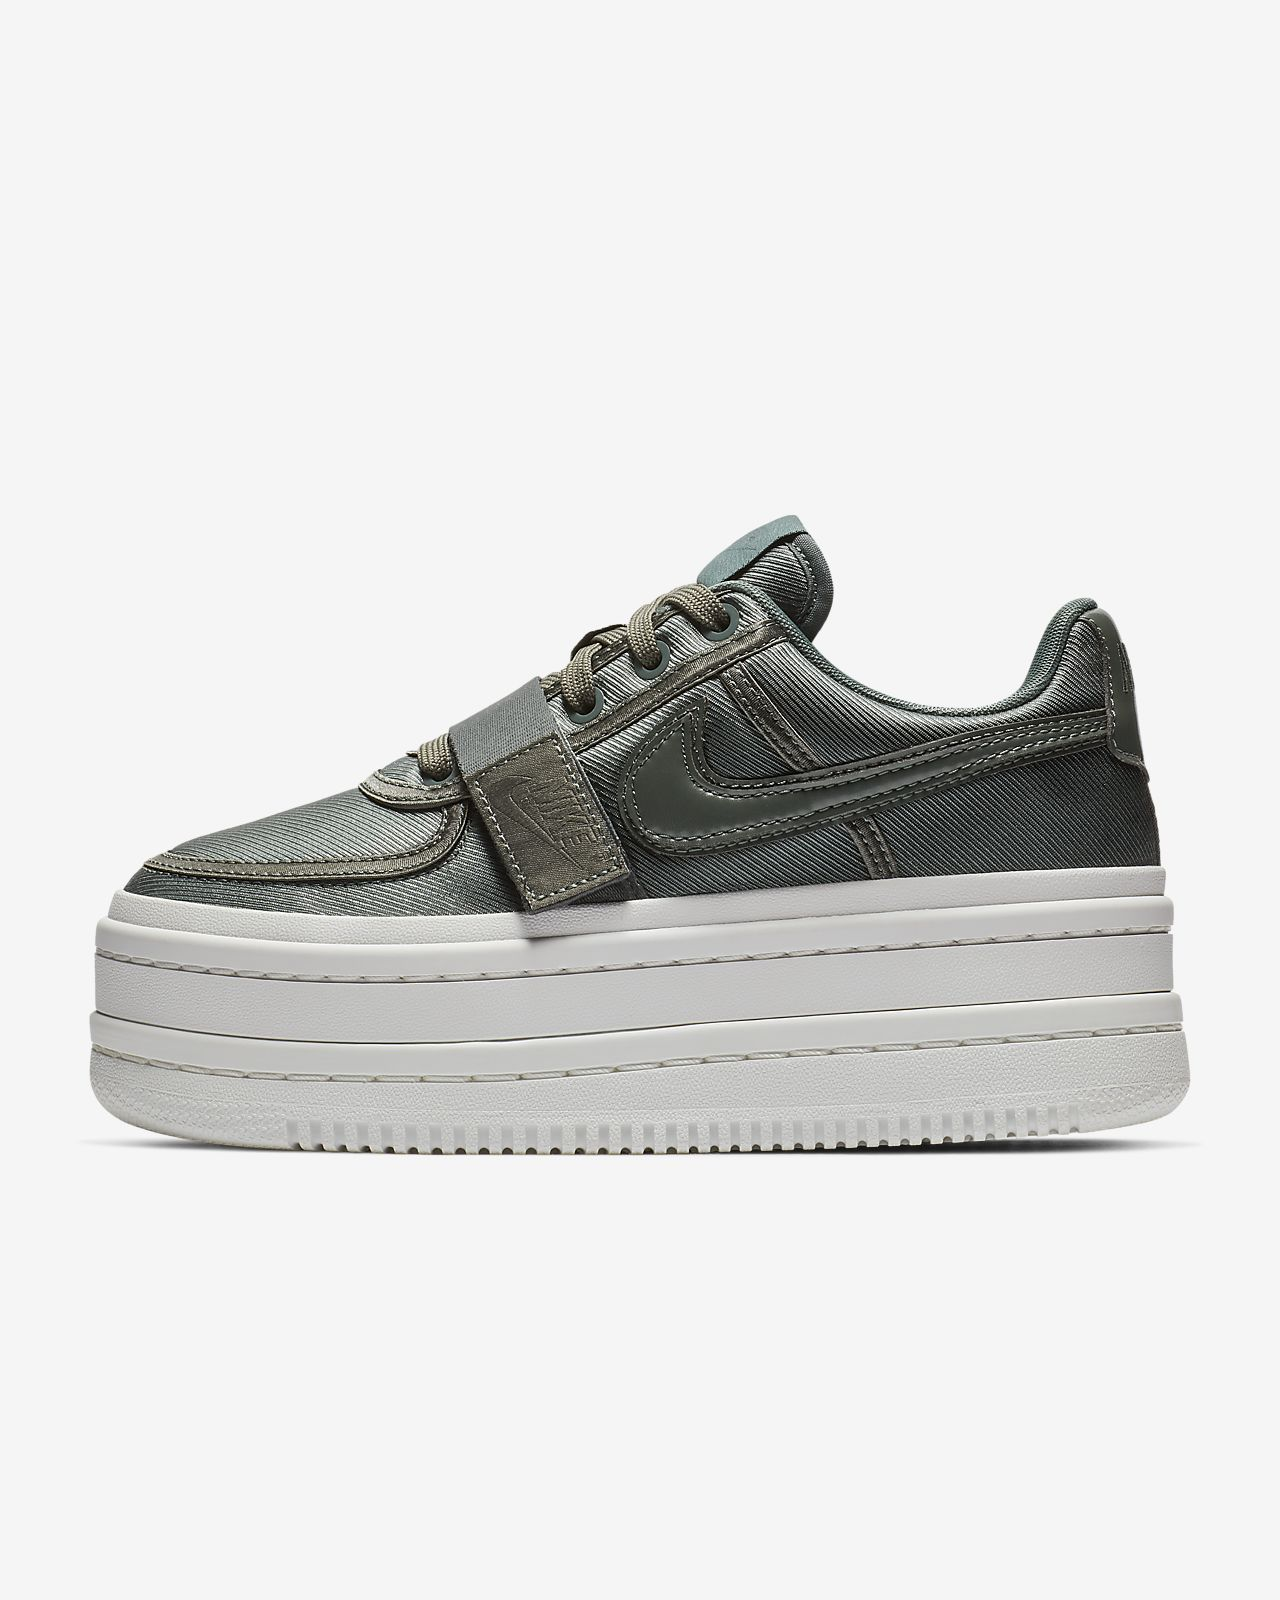 Nike Vandal 2k Womens Shoe